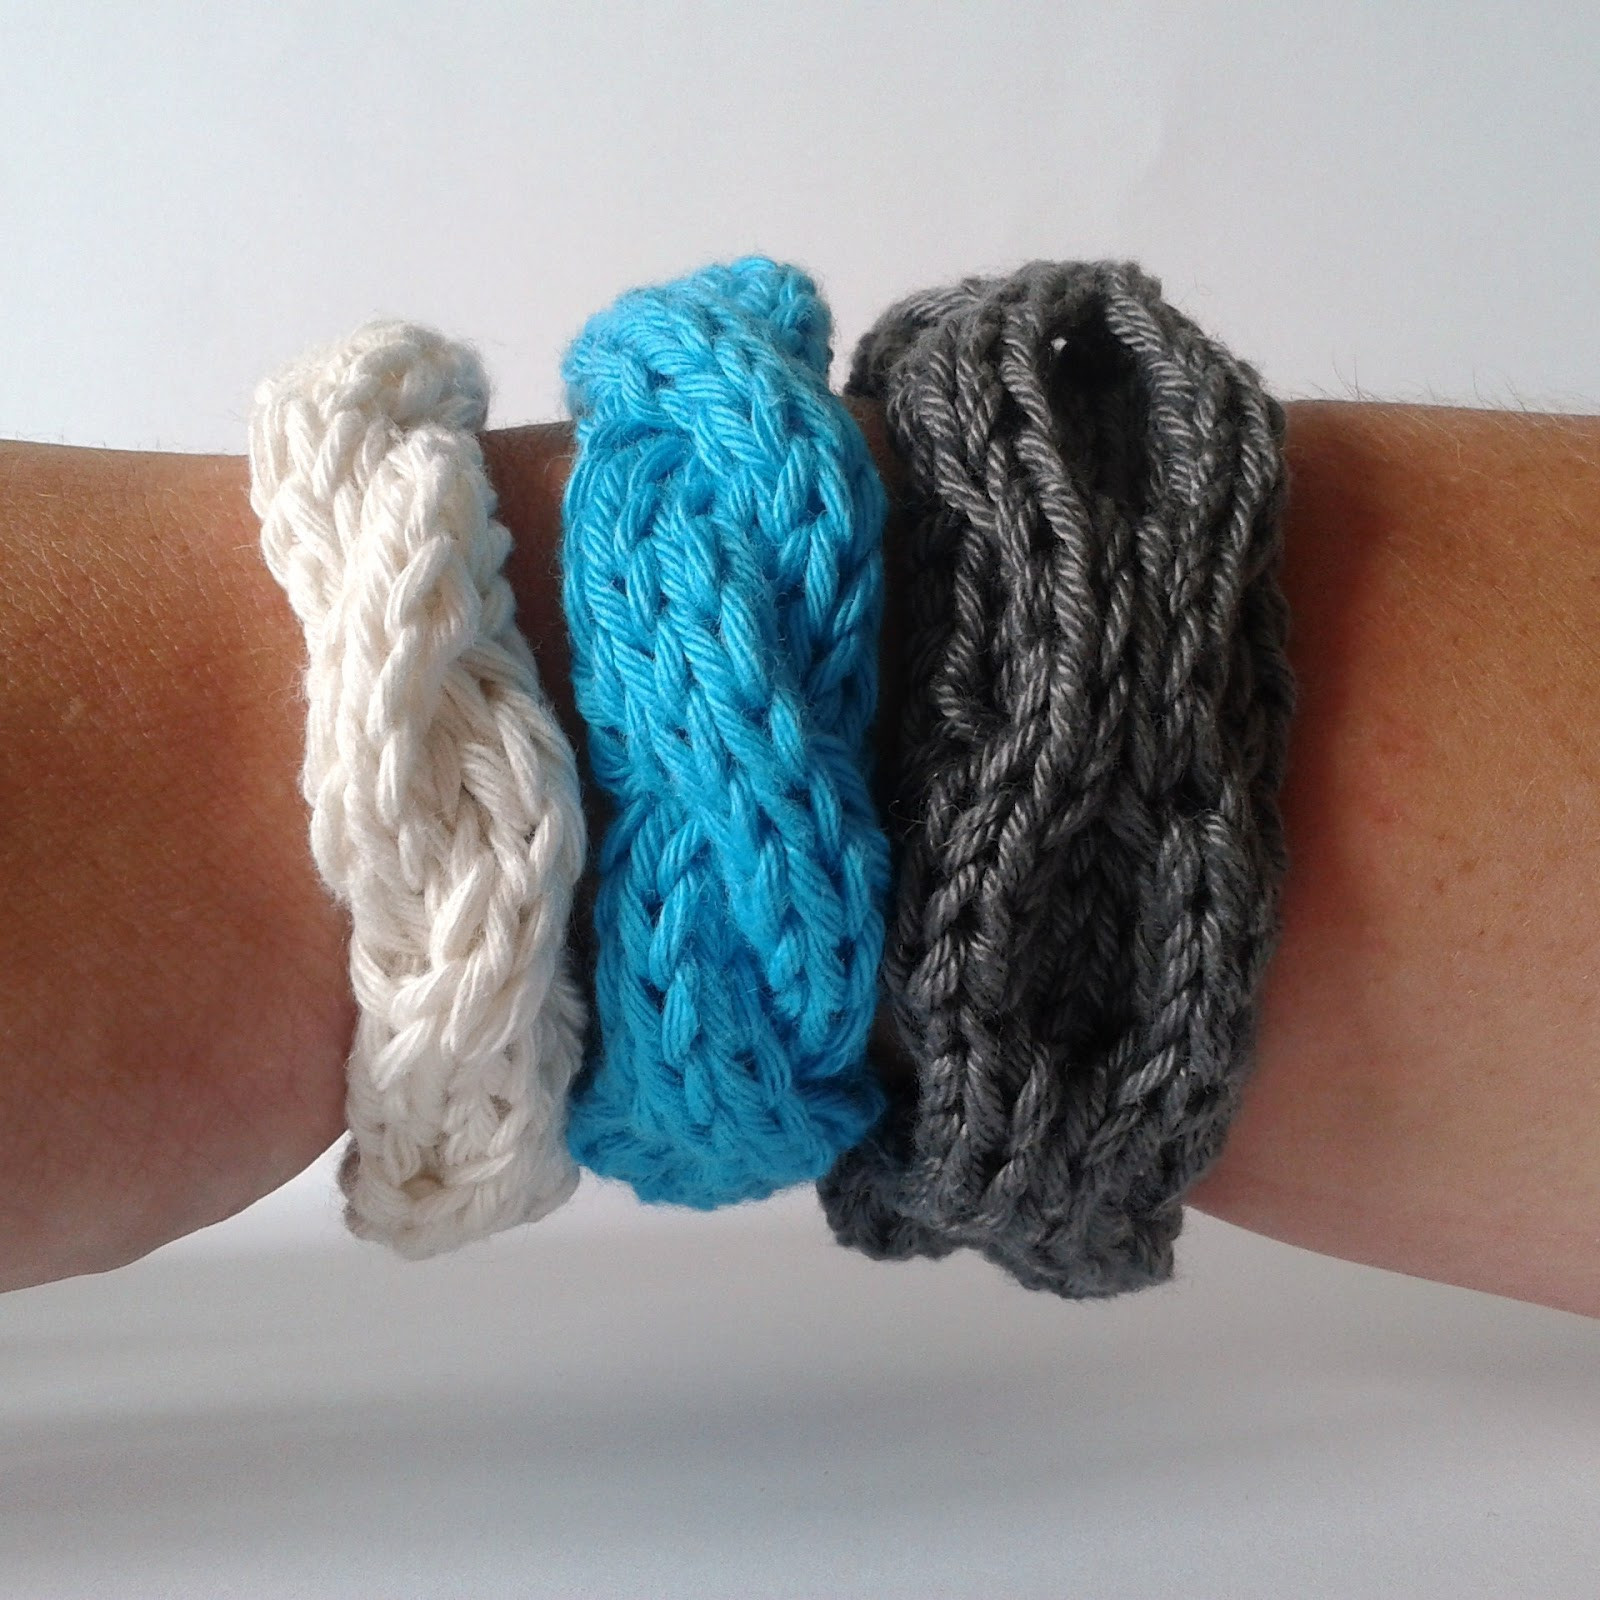 New Easy Free Knit Bracelet Patterns Knitted Bracelet Of Brilliant 50 Models Knitted Bracelet